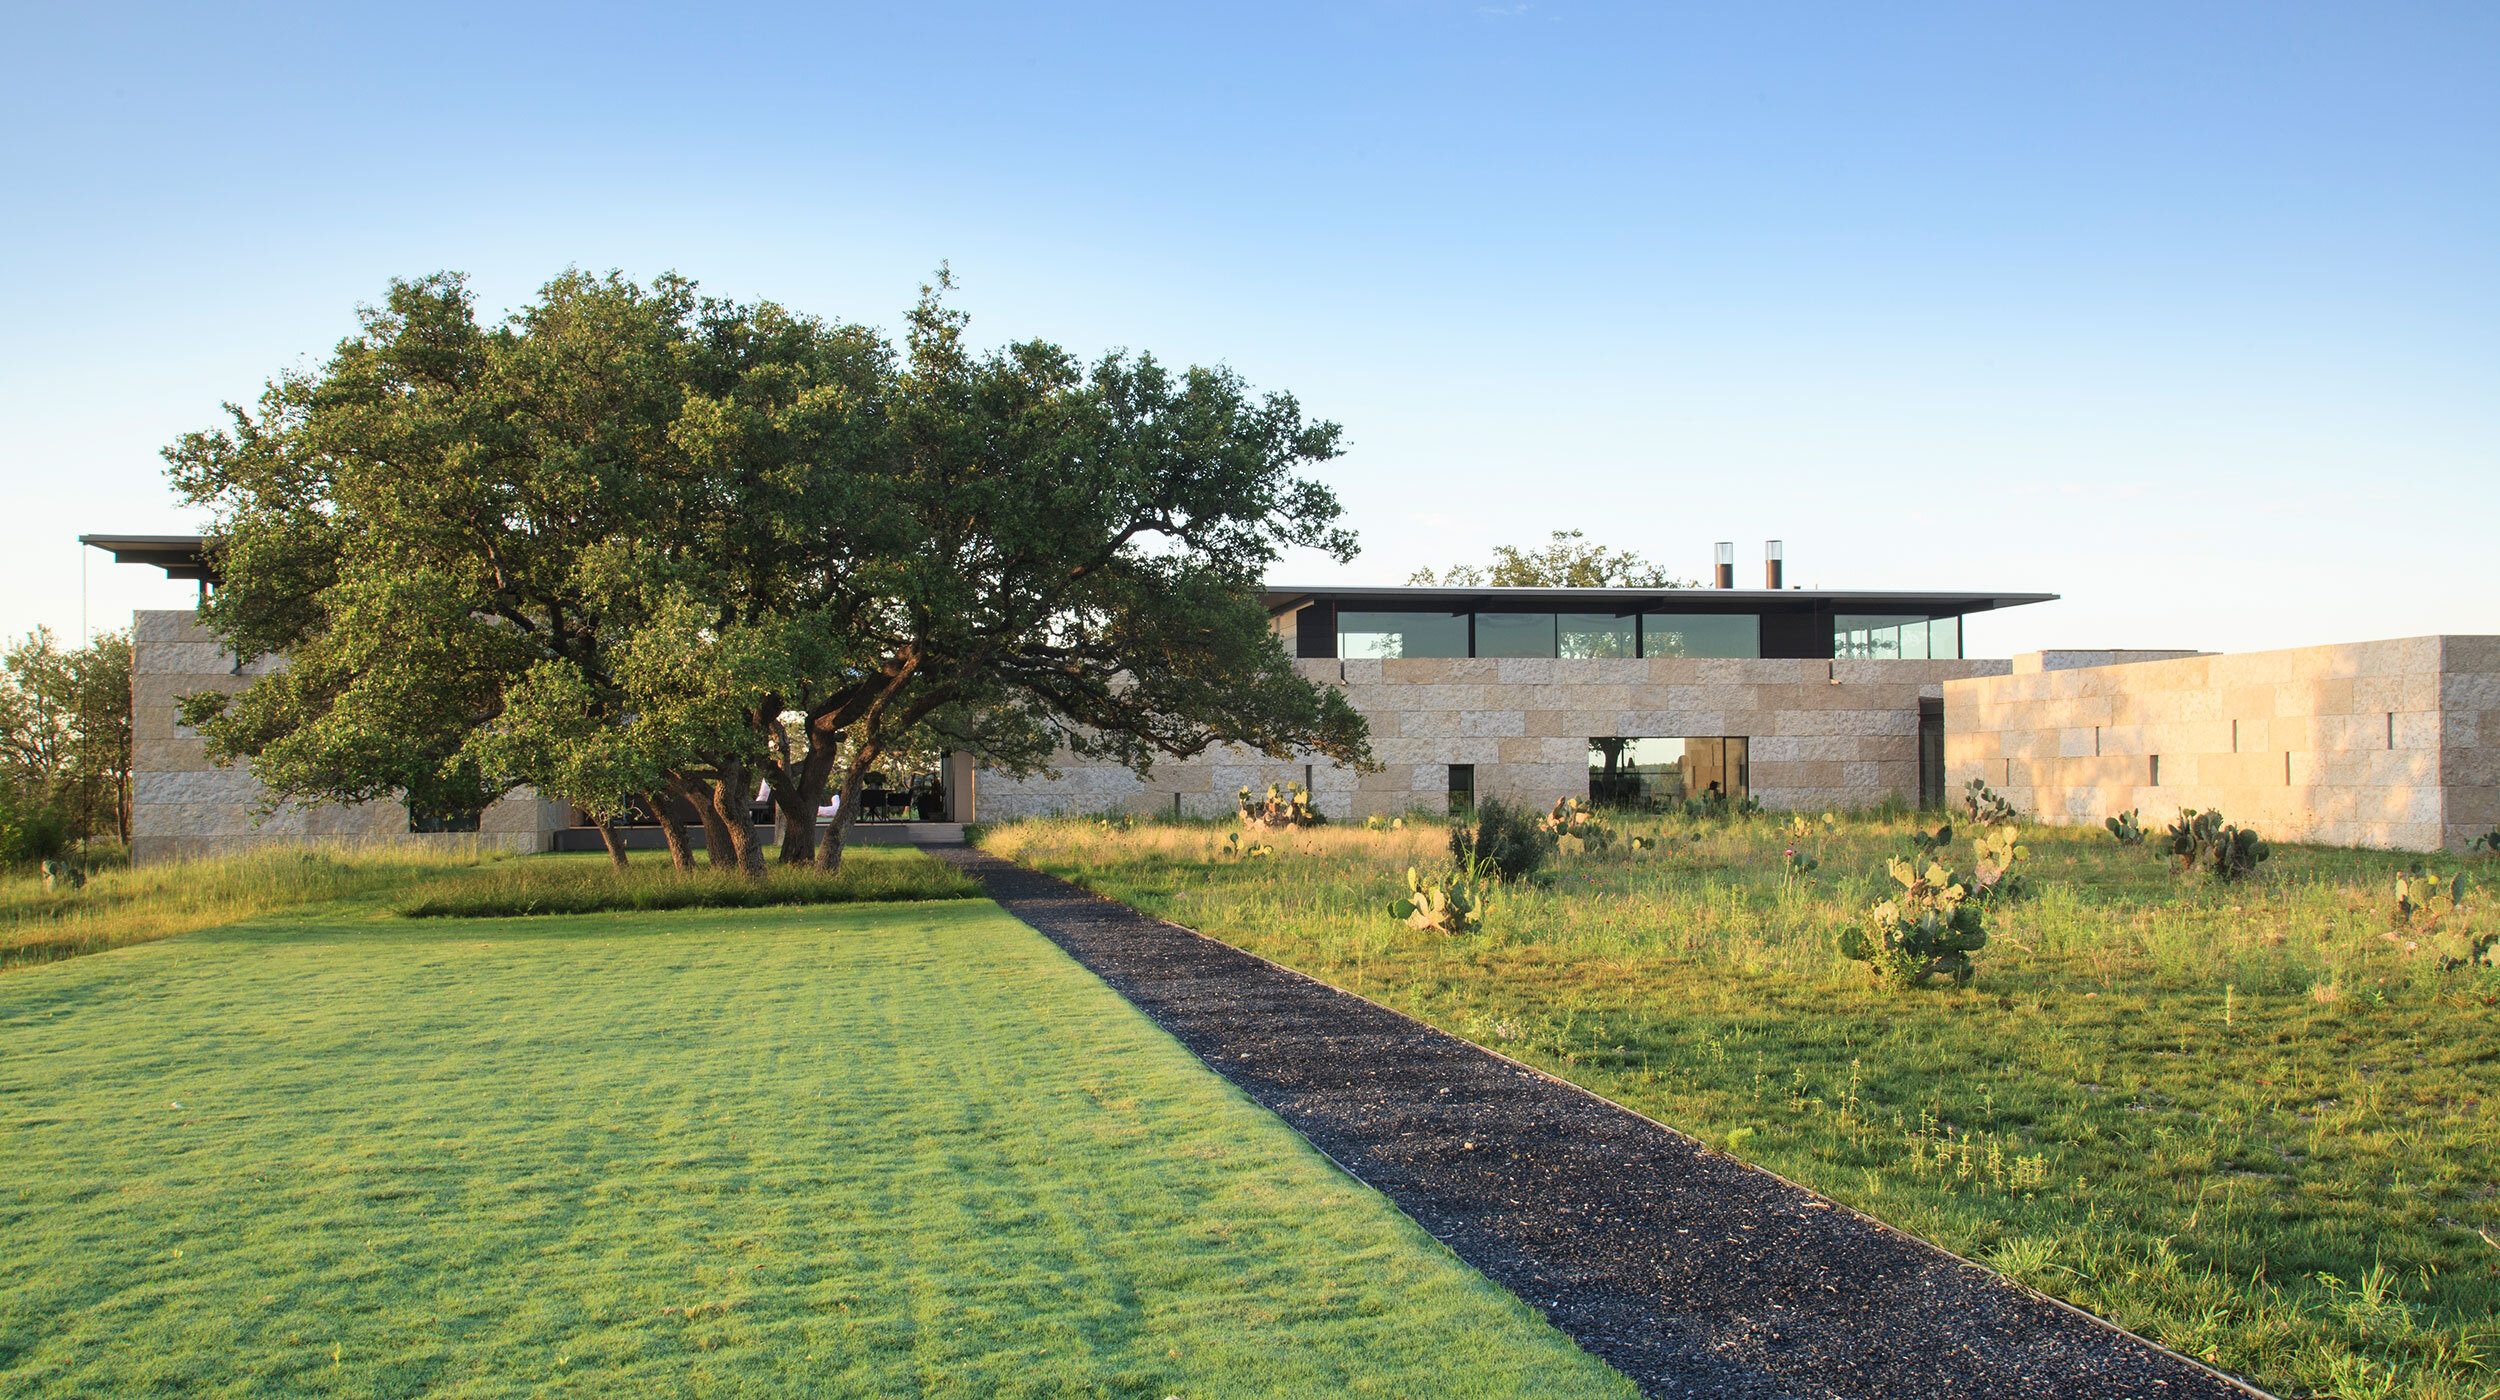 Hill Country Prospect Studio Outside Landscape Architects